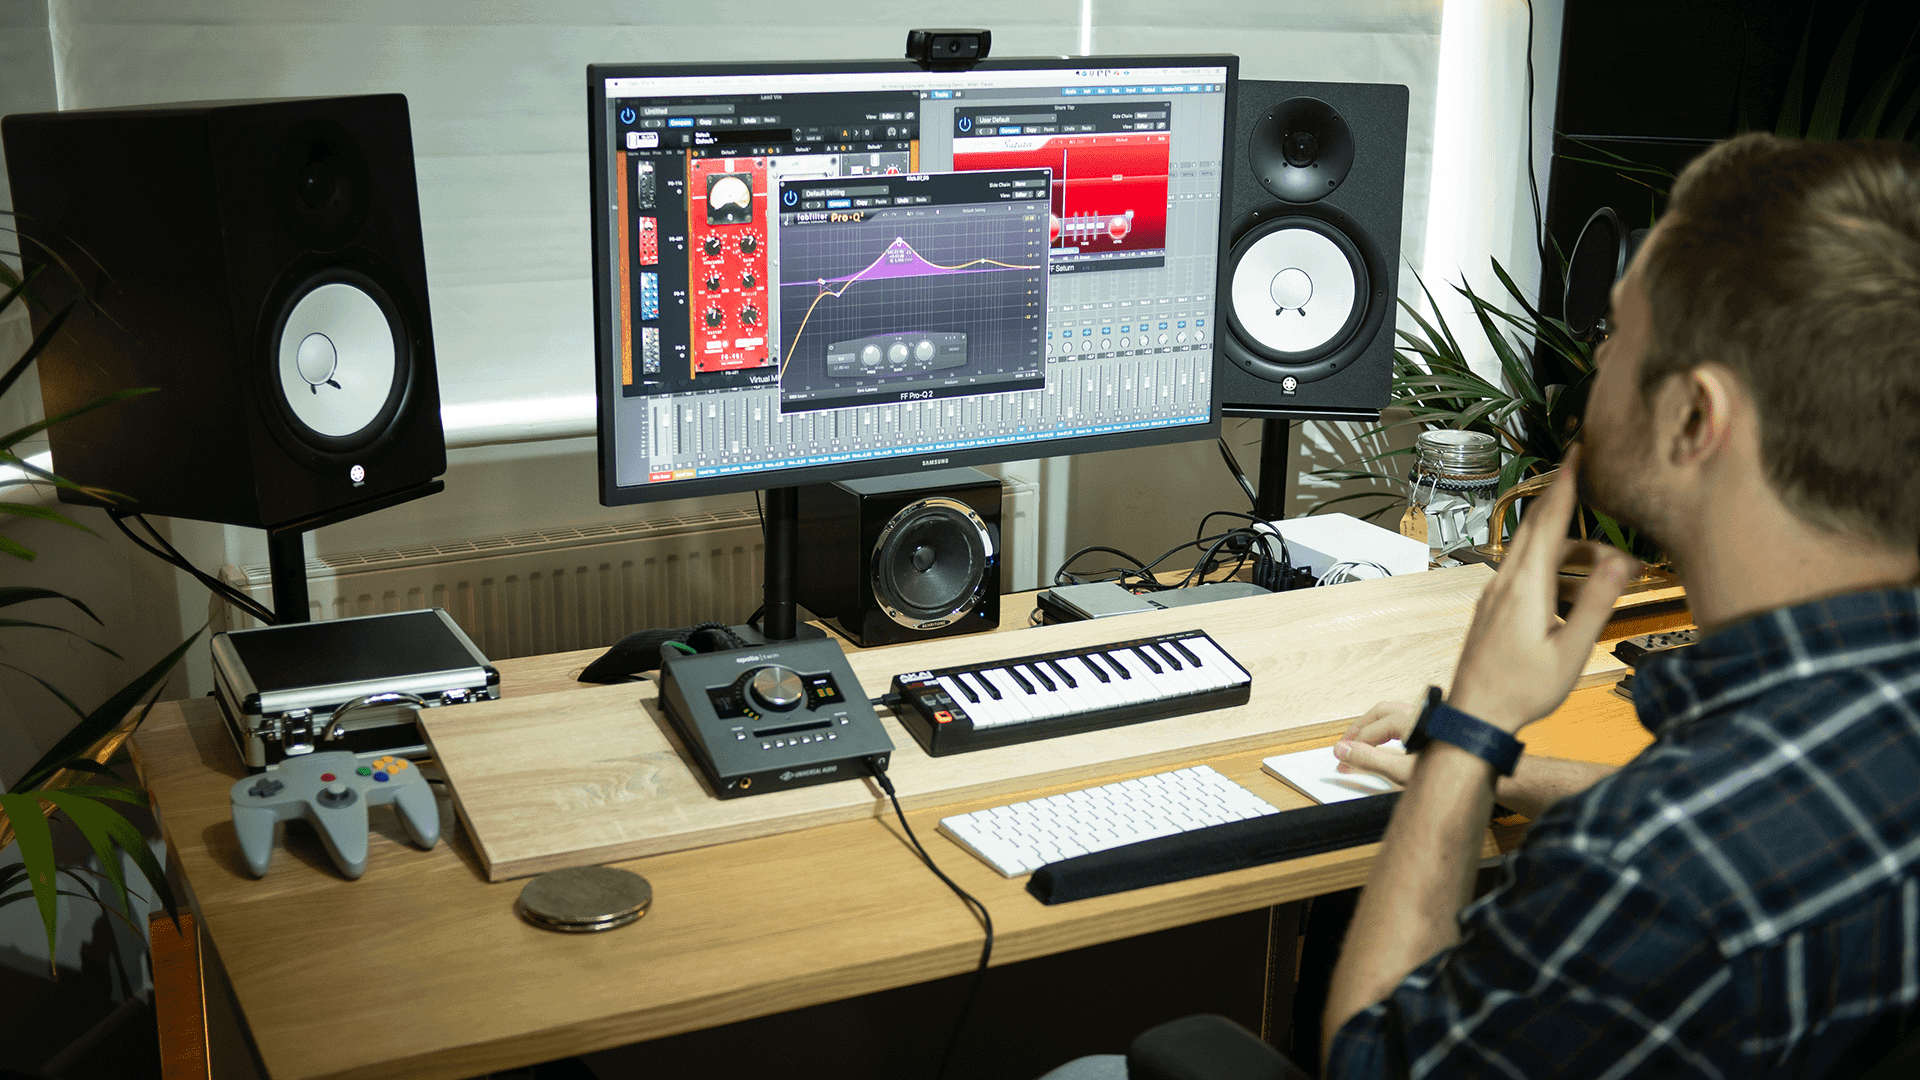 Do all monitors have speakers?